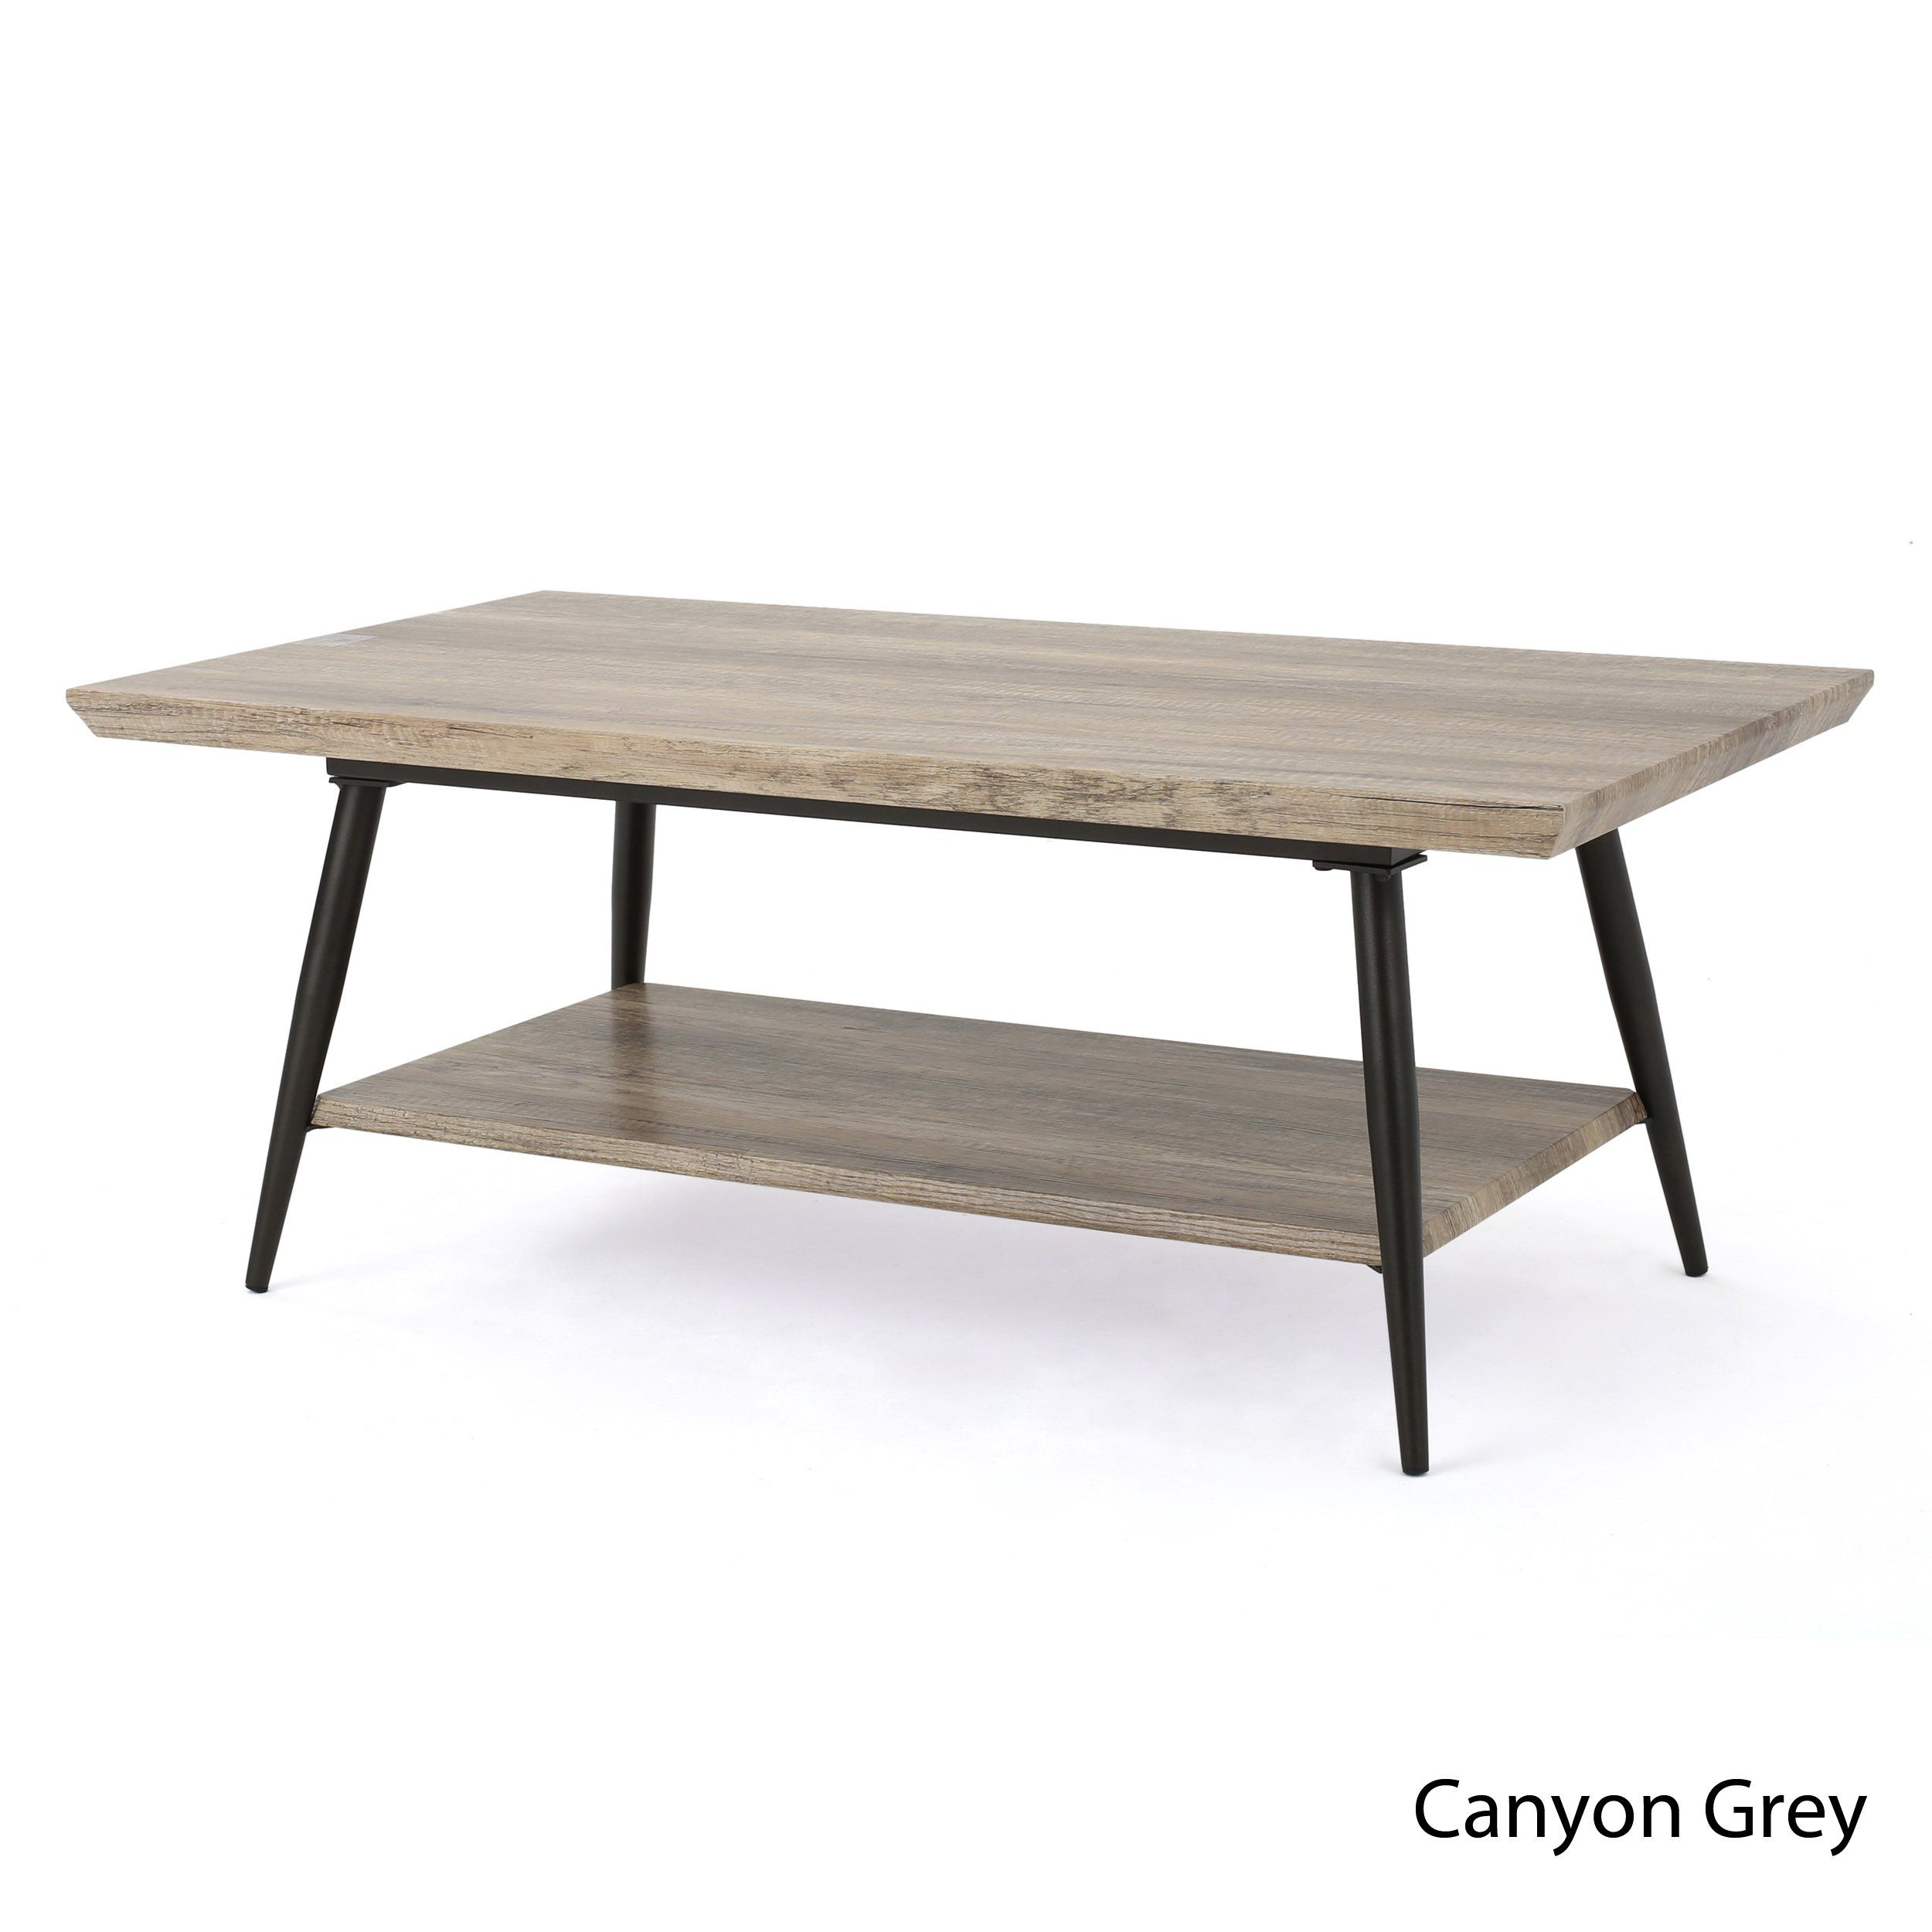 Ditmas Canyon Grey Wood Mid Century Modern Coffee Table You Can Obtain Even More Mid Century Coffee Table Coffee Table Wood Mid Century Modern Coffee Table [ 2500 x 2500 Pixel ]